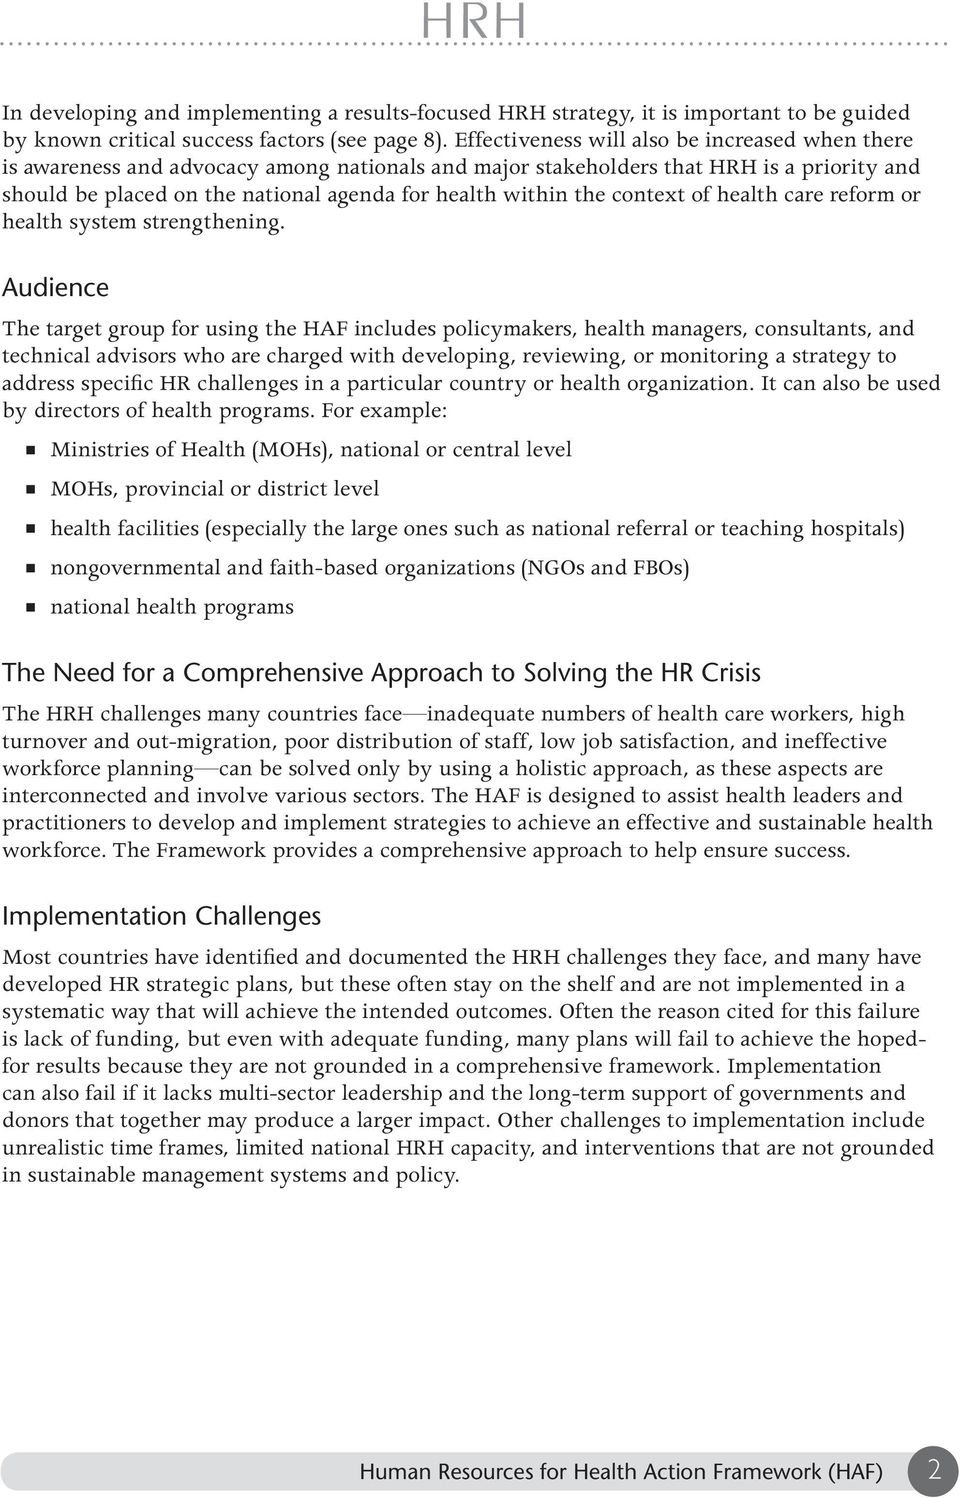 the context of health care reform or health system strengthening.